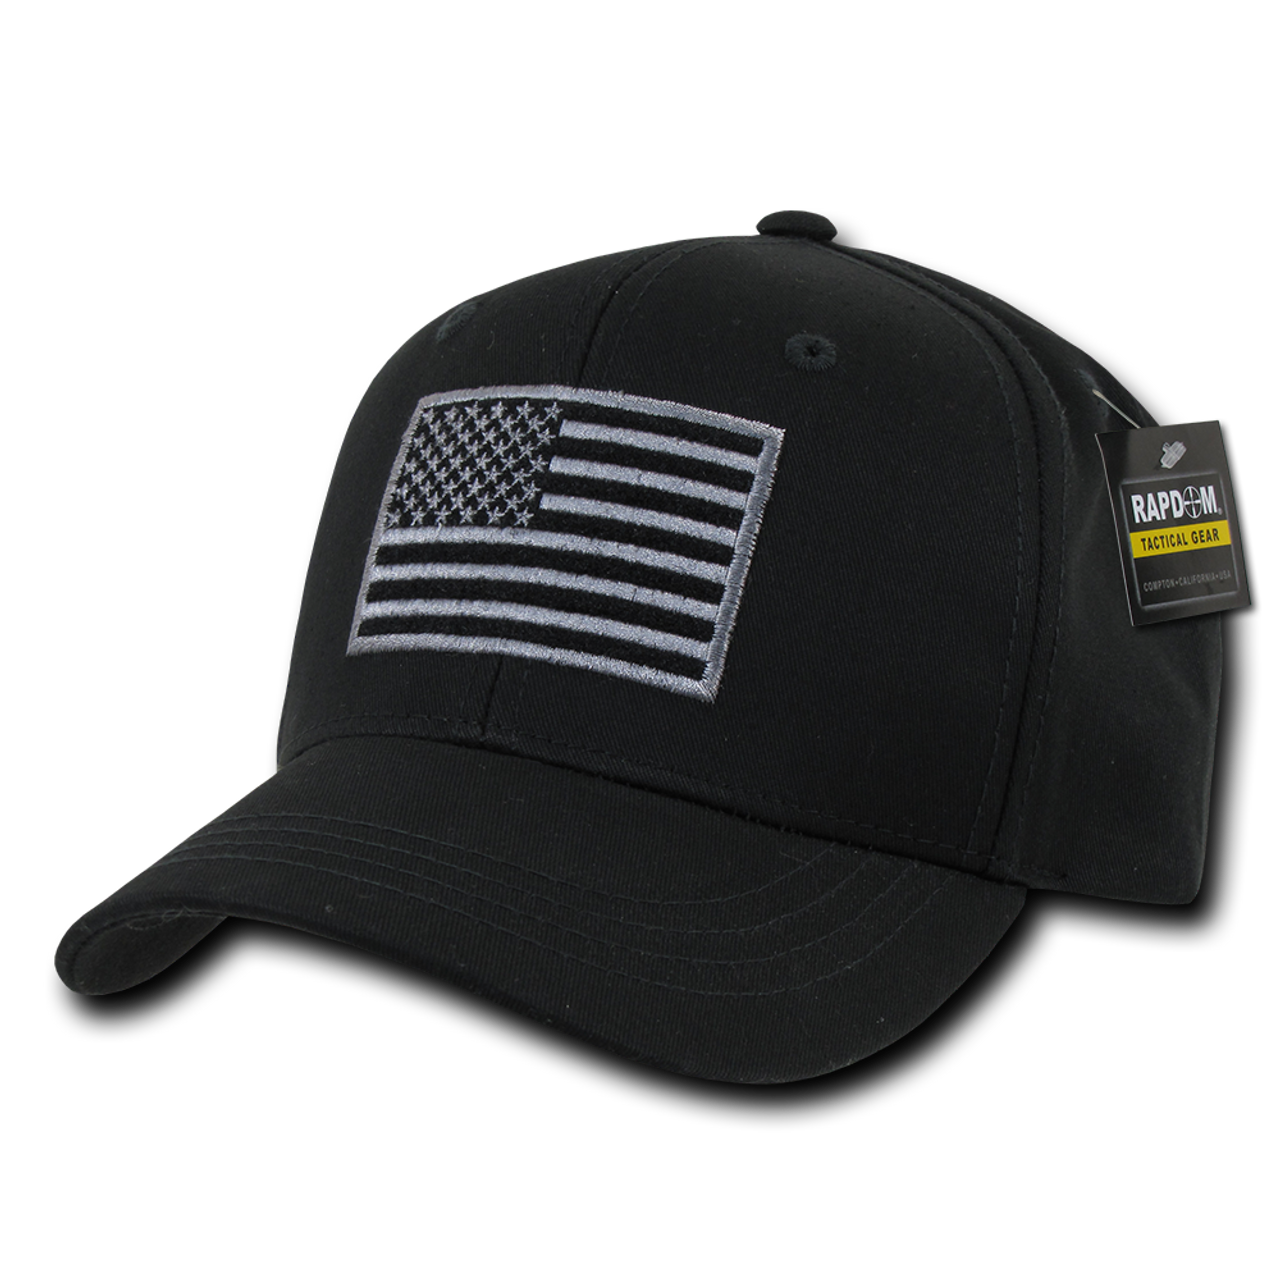 e83aaf46fb32a ... T76 - Tactical Operator Cap - American Flag Subdued - Black ...